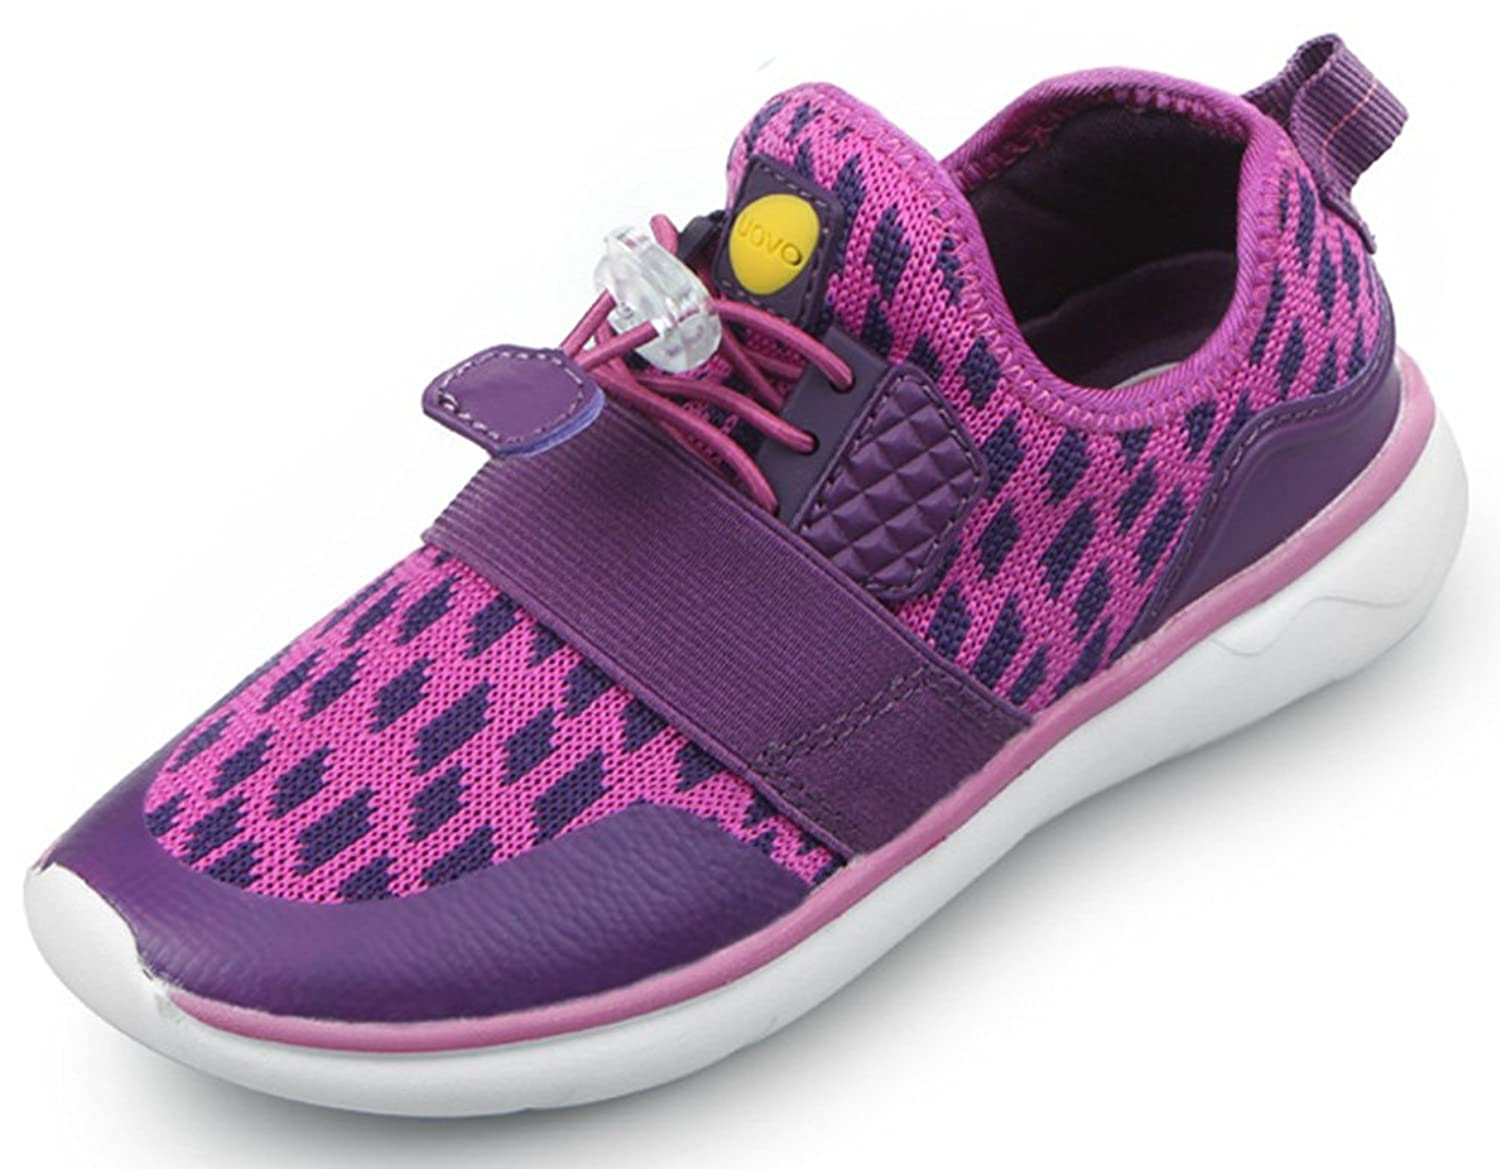 InStar Kids' Fashion Drawstring Breathable Sneakers Shoes